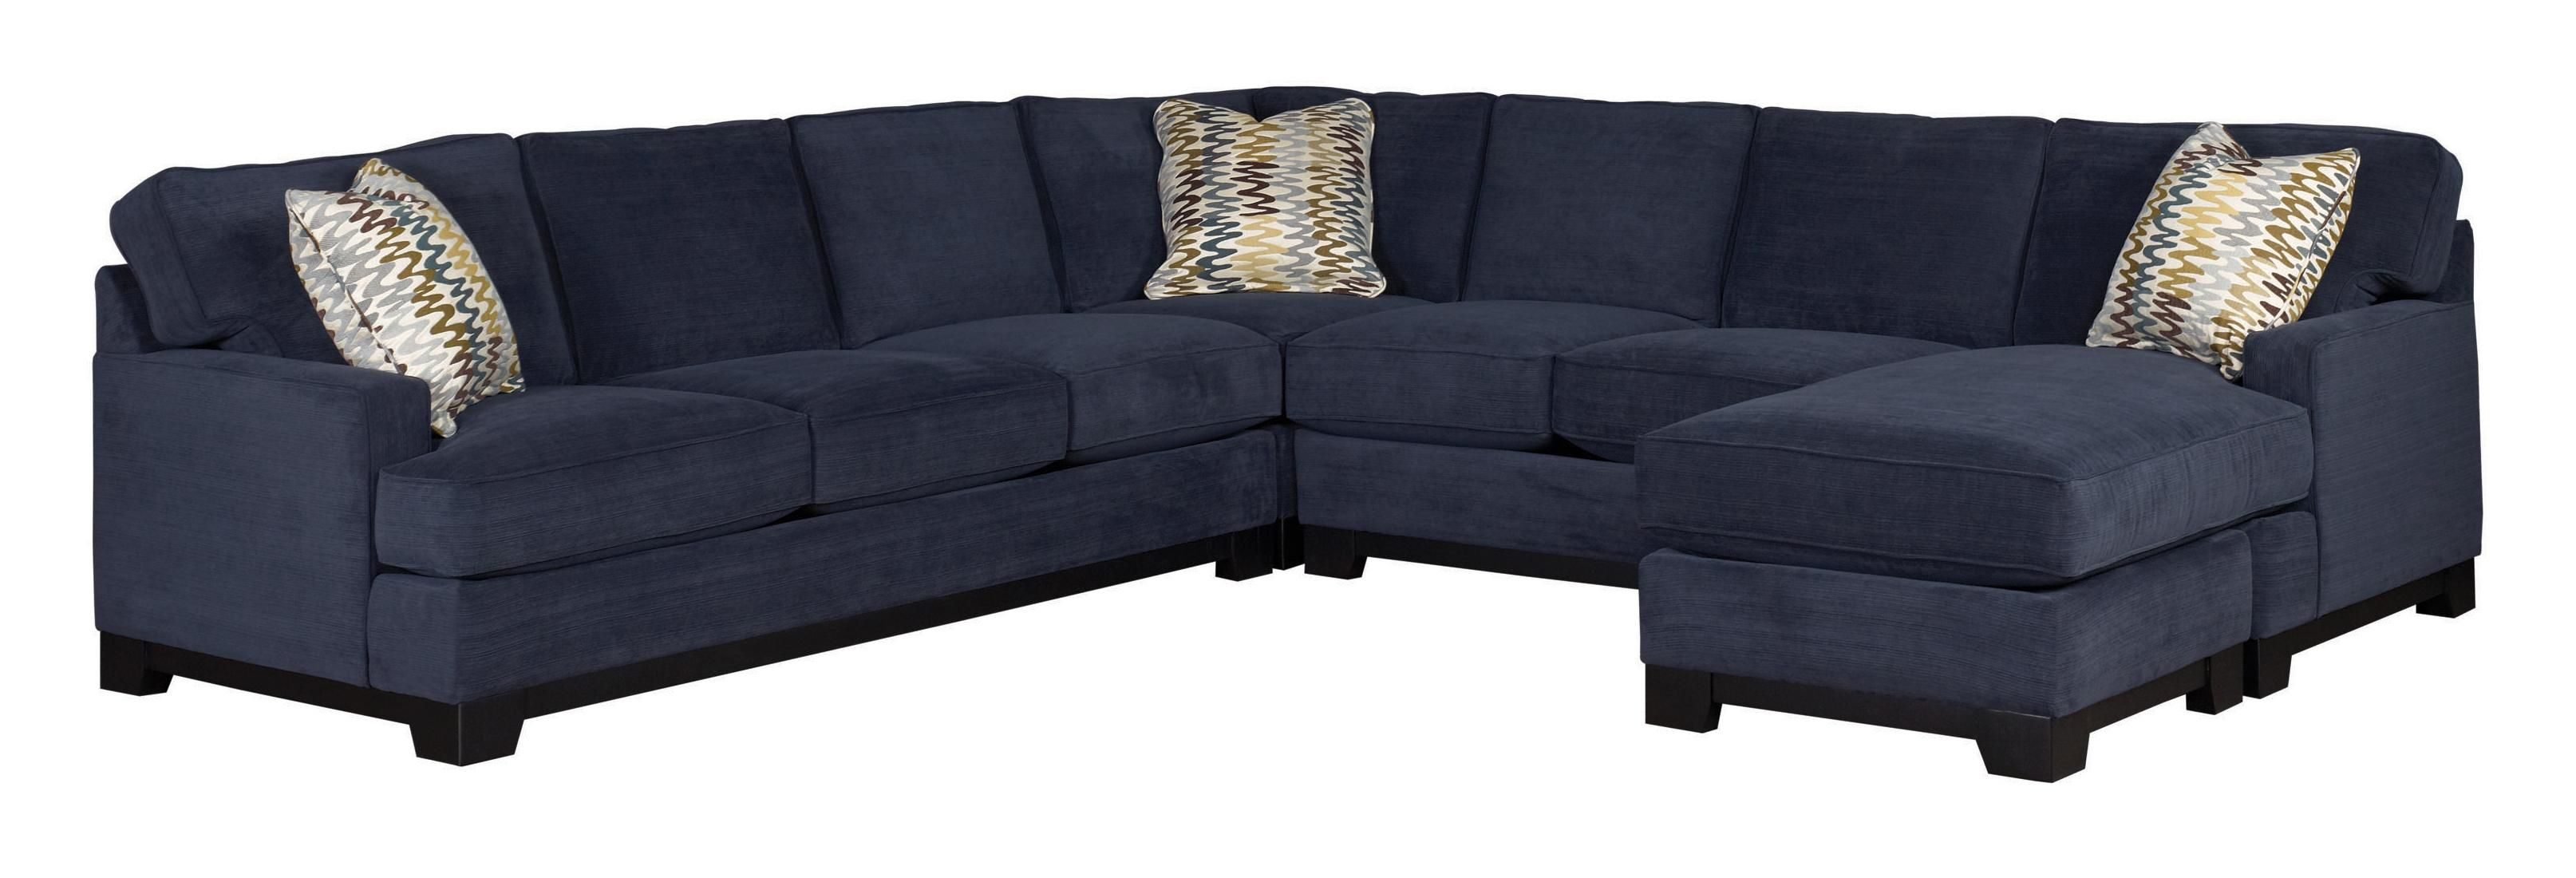 Best Kronos Contemporary 4 Piece Sectional Sofa With Right Arm 400 x 300